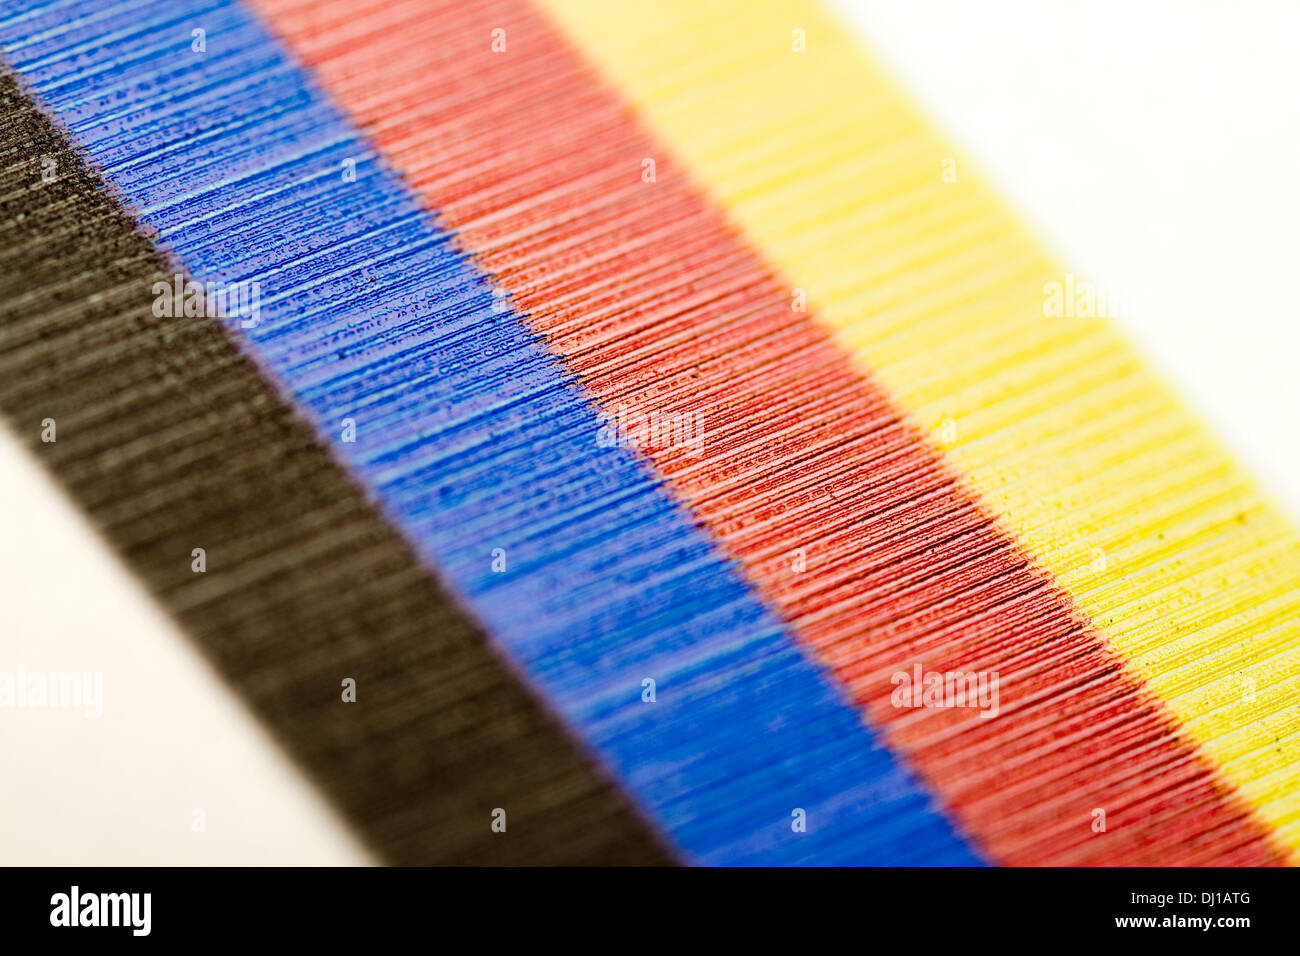 Extreme macro of a digital UV print, CMYK strips on the side of the print - Stock Image